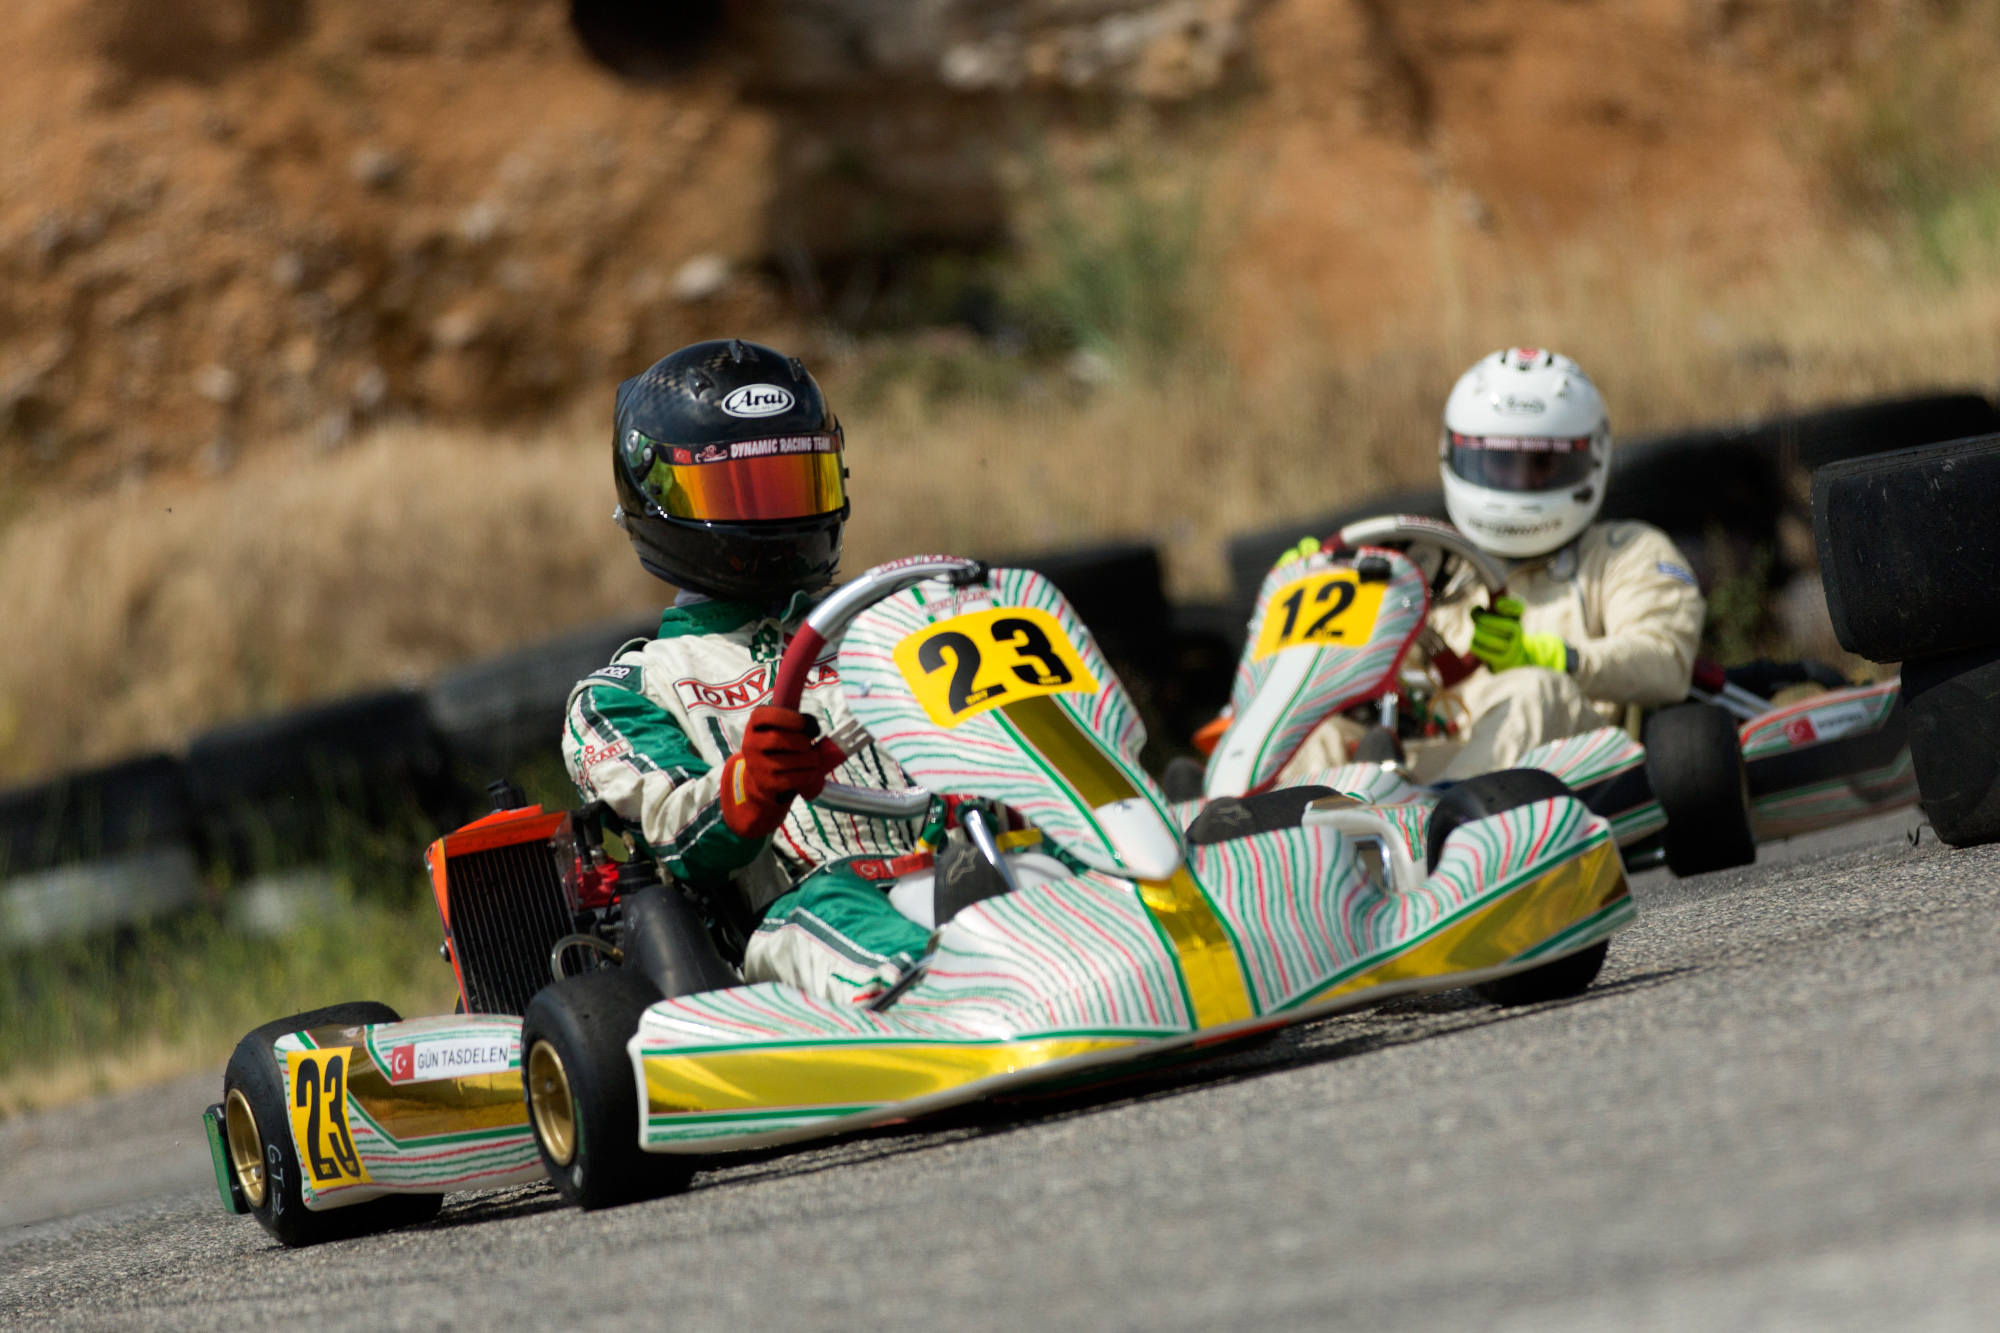 2017Karting_Izmır_Junior_GunTasdelen